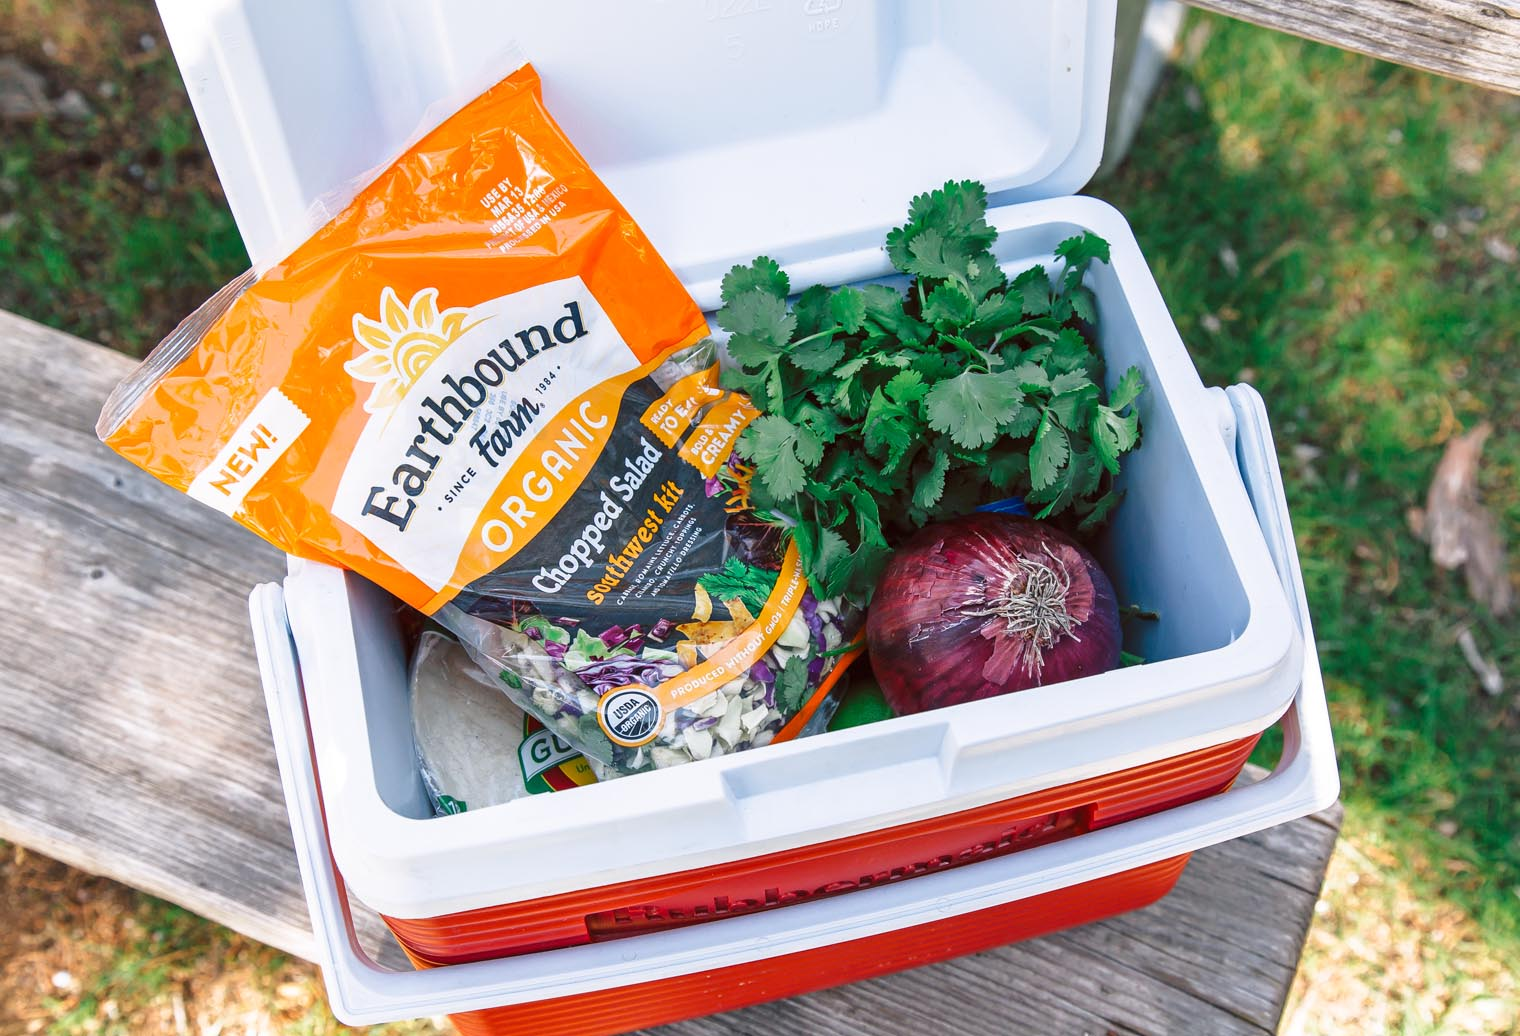 Earthbound Farm's Southwest Chopped Salad Kit is an easy way to pack some veggies along on a camping trip.